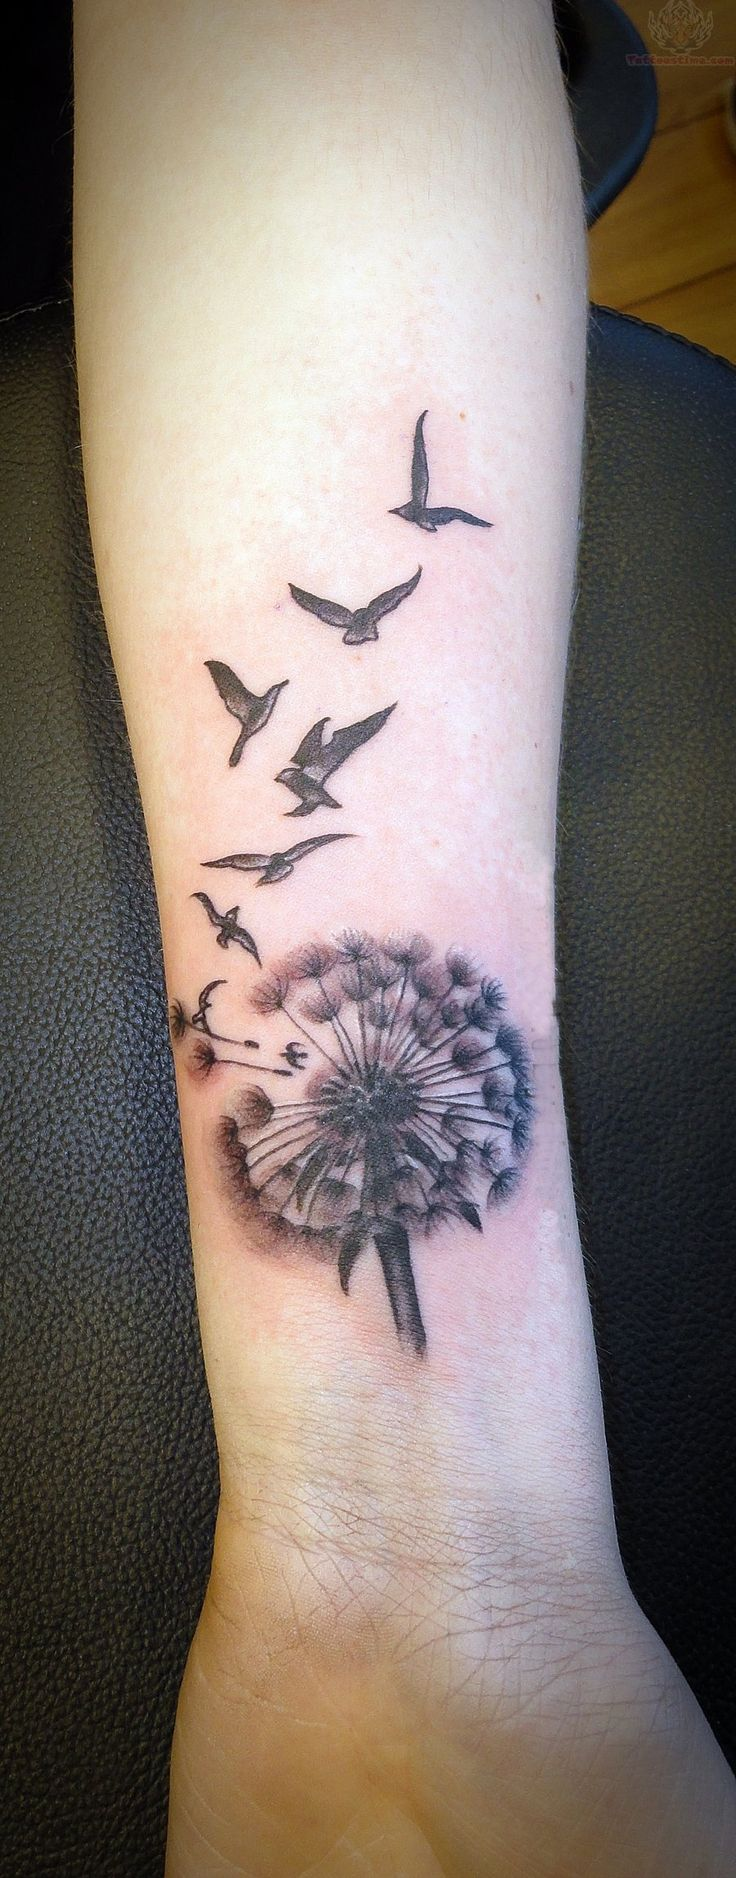 Tattoo ideas for the wrist - Wrist Tattoos Dandelion And Birds Tattoos On Wrist Love This Too